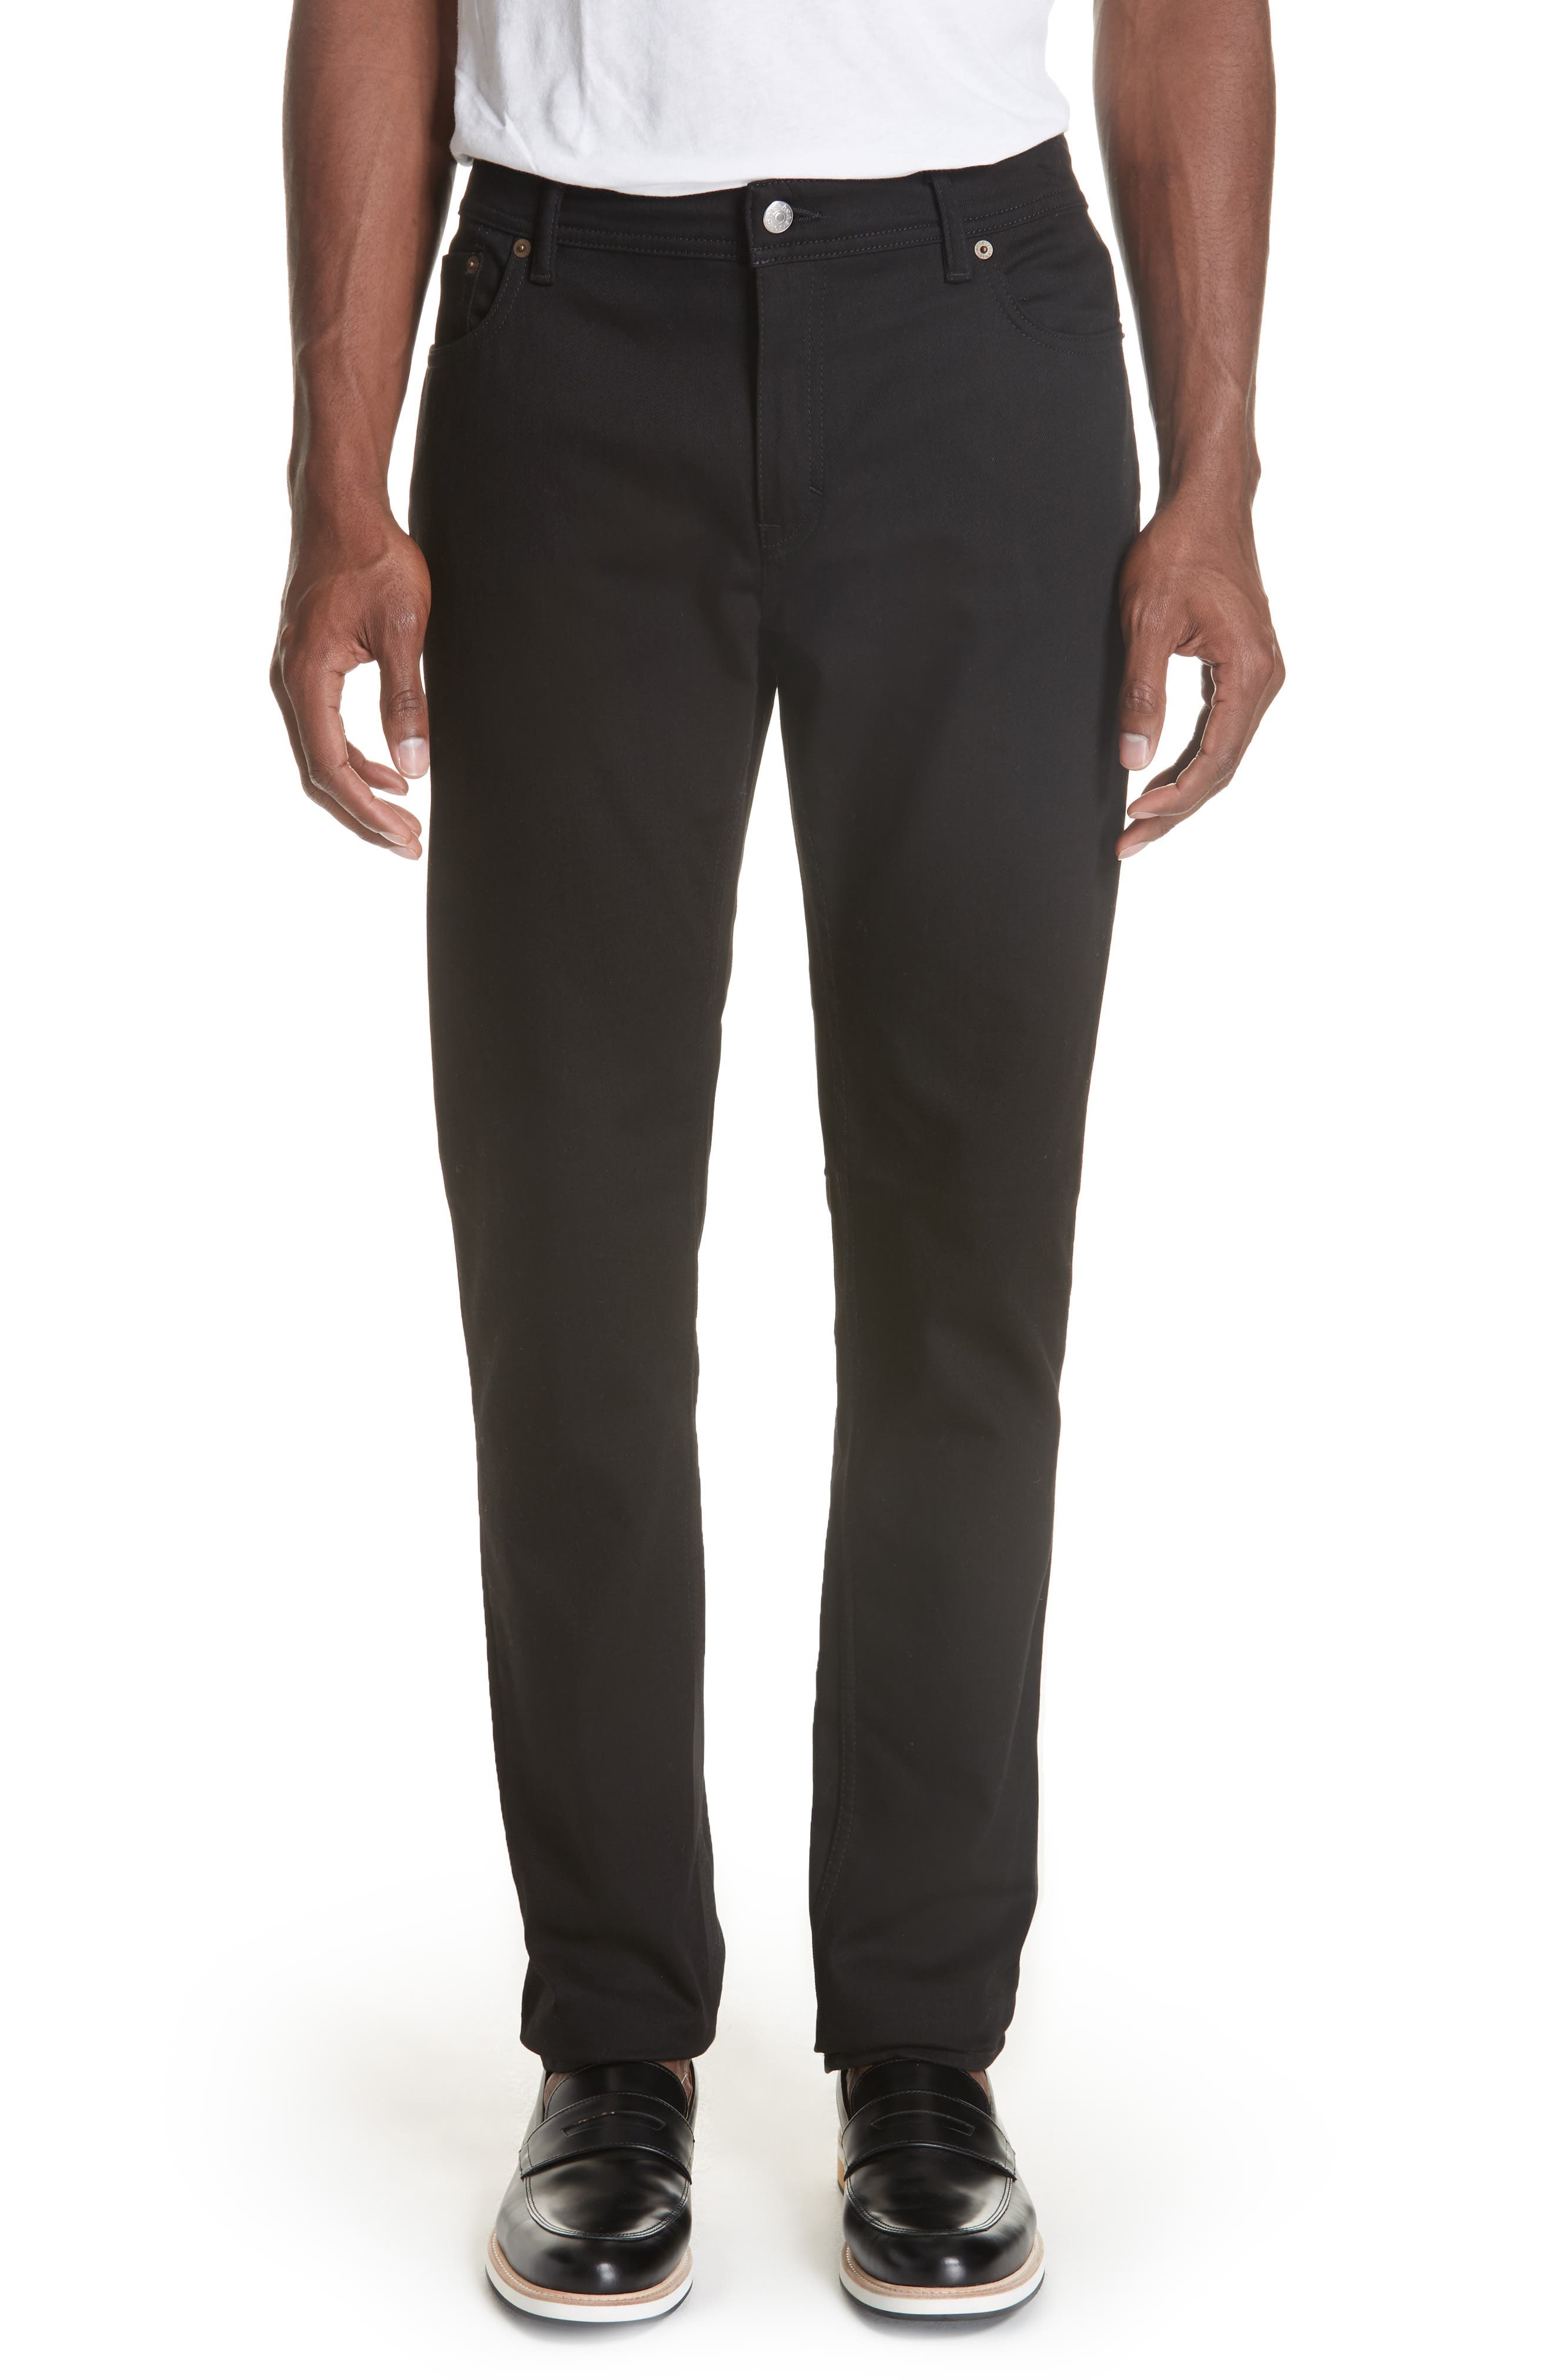 North Stay Slim Fit Jeans,                         Main,                         color, NORTH STAY BLACK